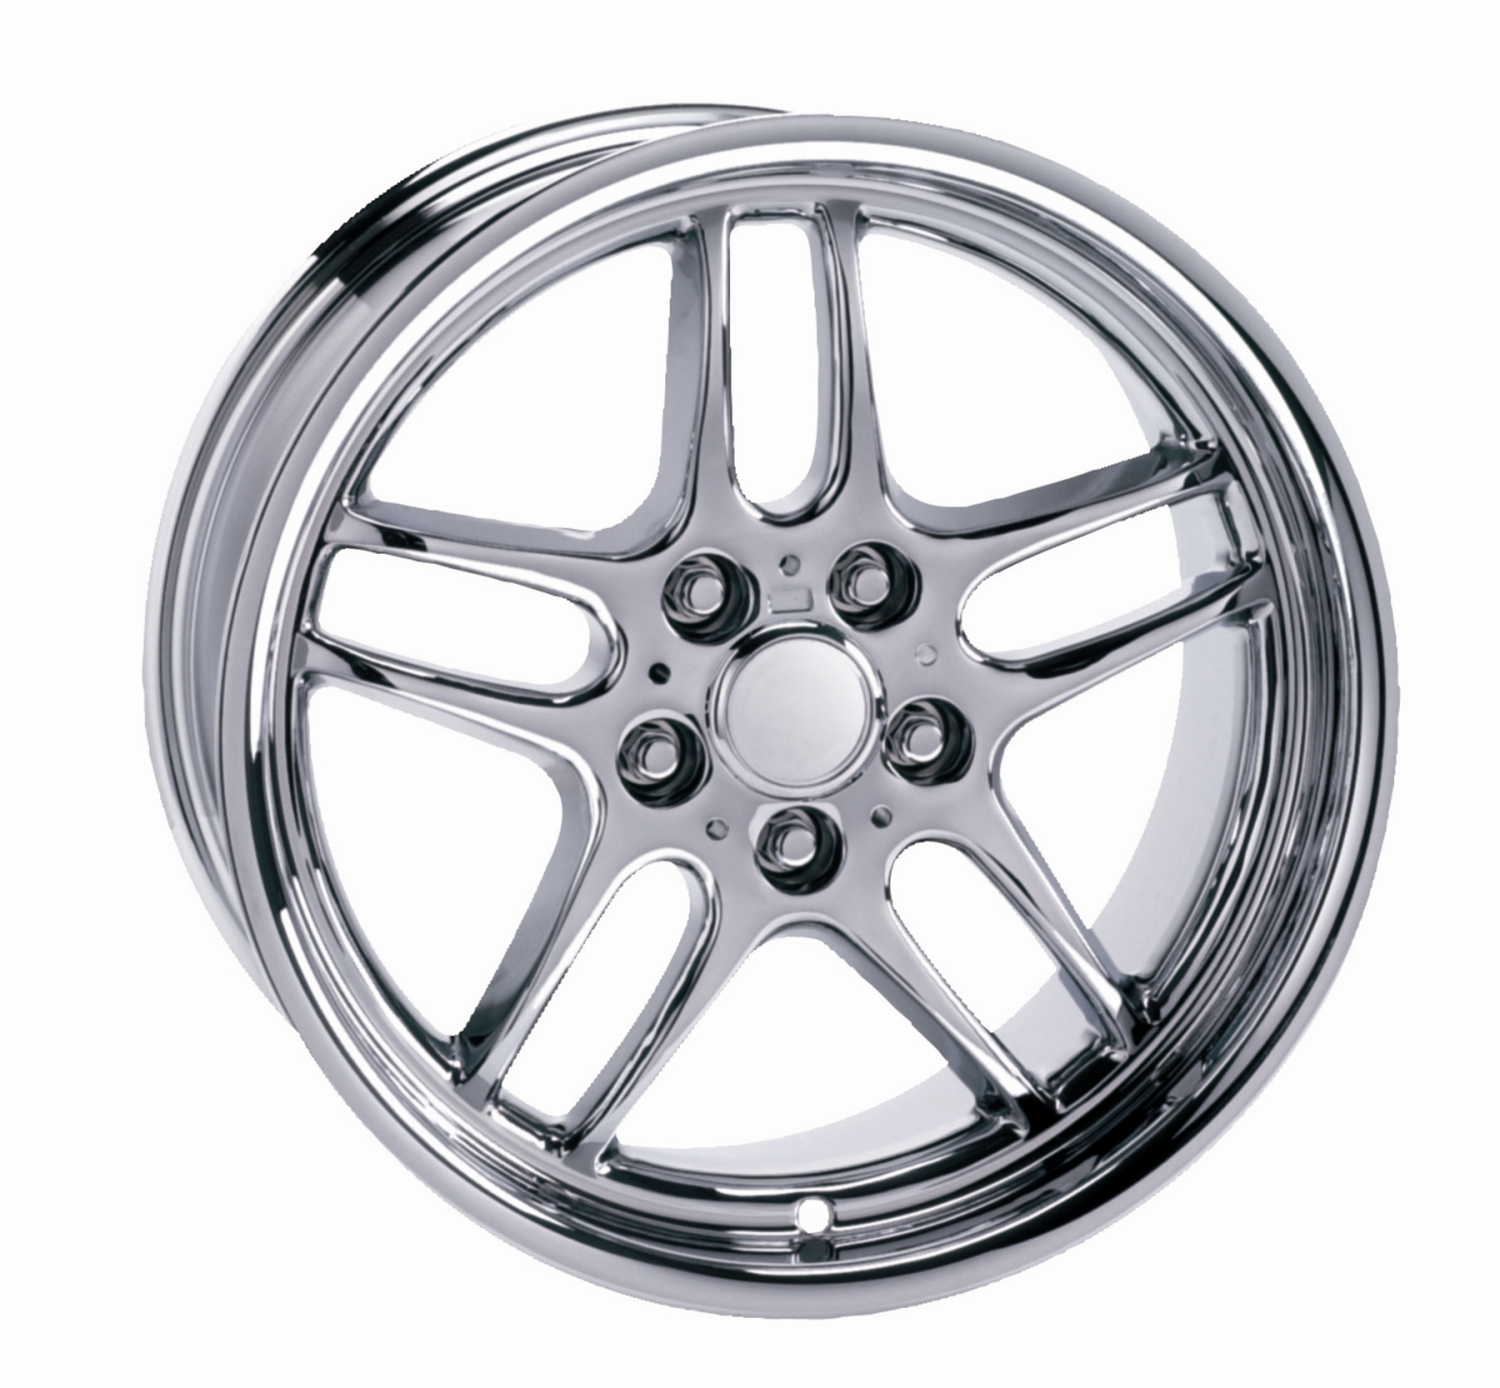 Bmw 7 Series 1988-2010 18x9.5 5x120 +25 - Parallel Spoke Wheel - Chrome With Cap